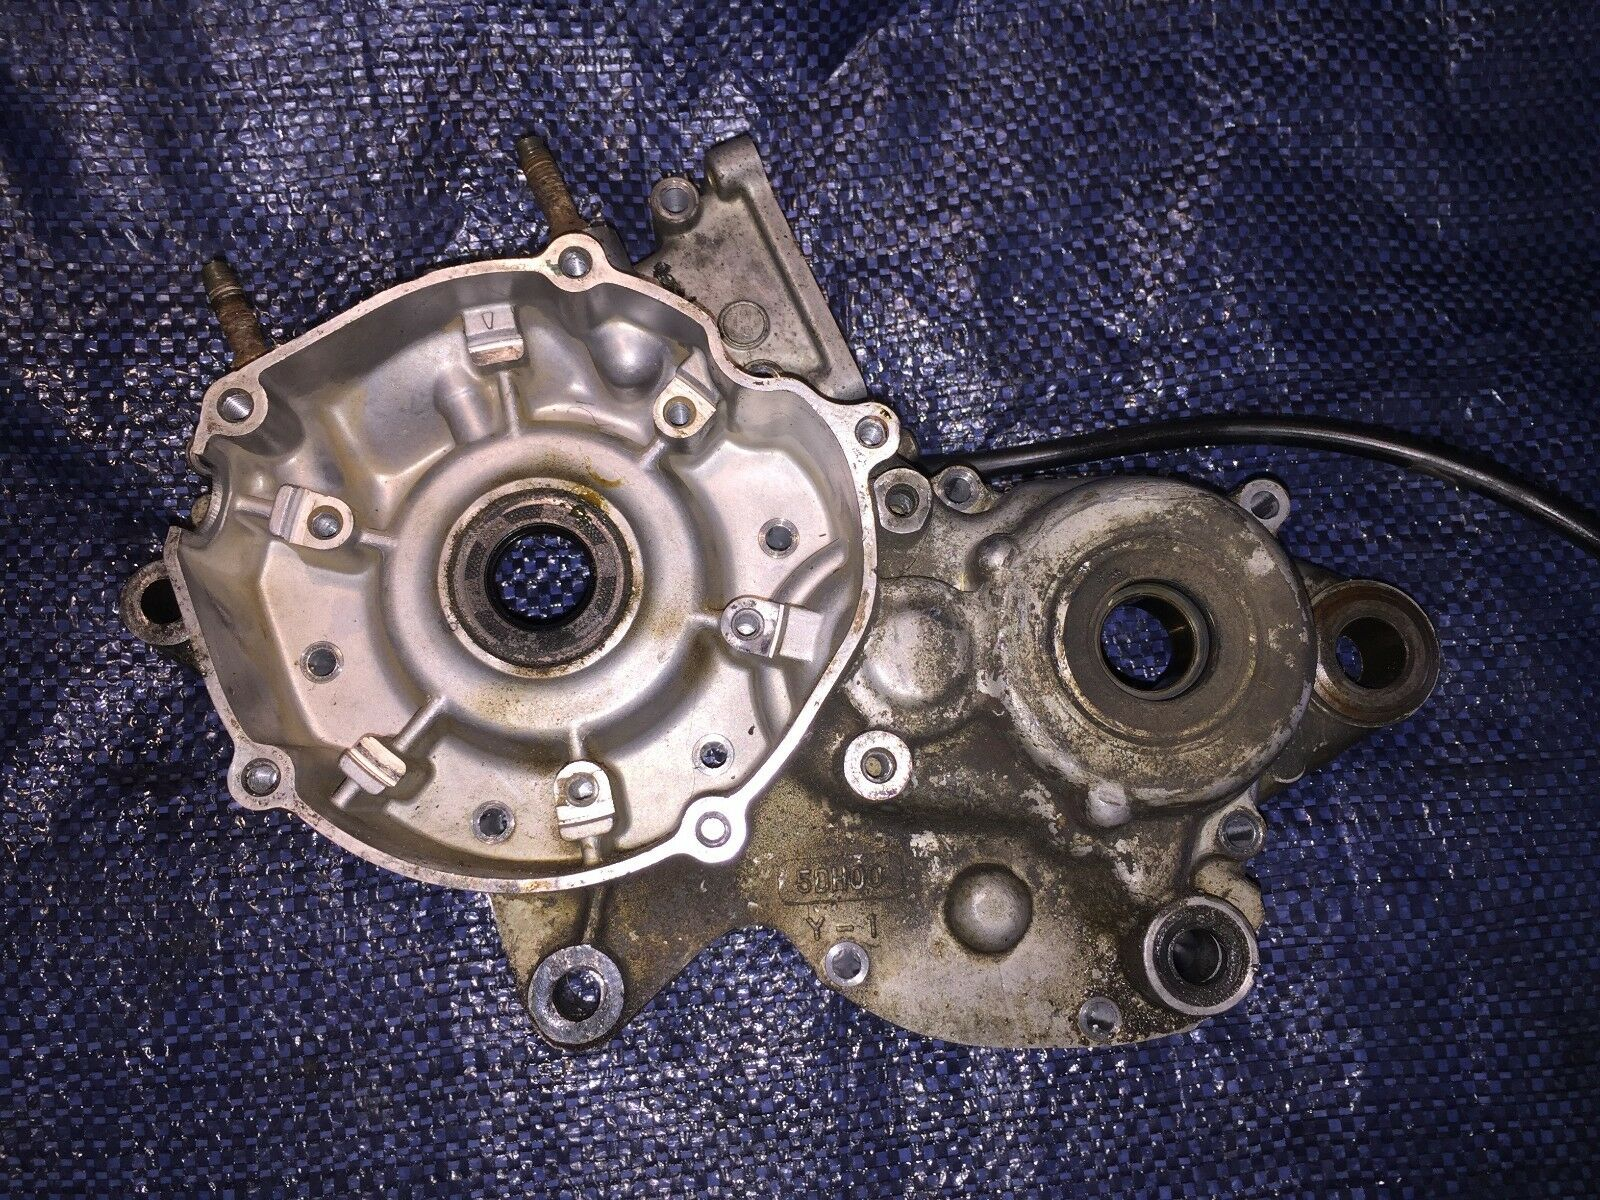 1998 1998 1998 98 Yamaha Yz125 Yz 125 Left Side Engine Case Bottom End Crankcase df6665